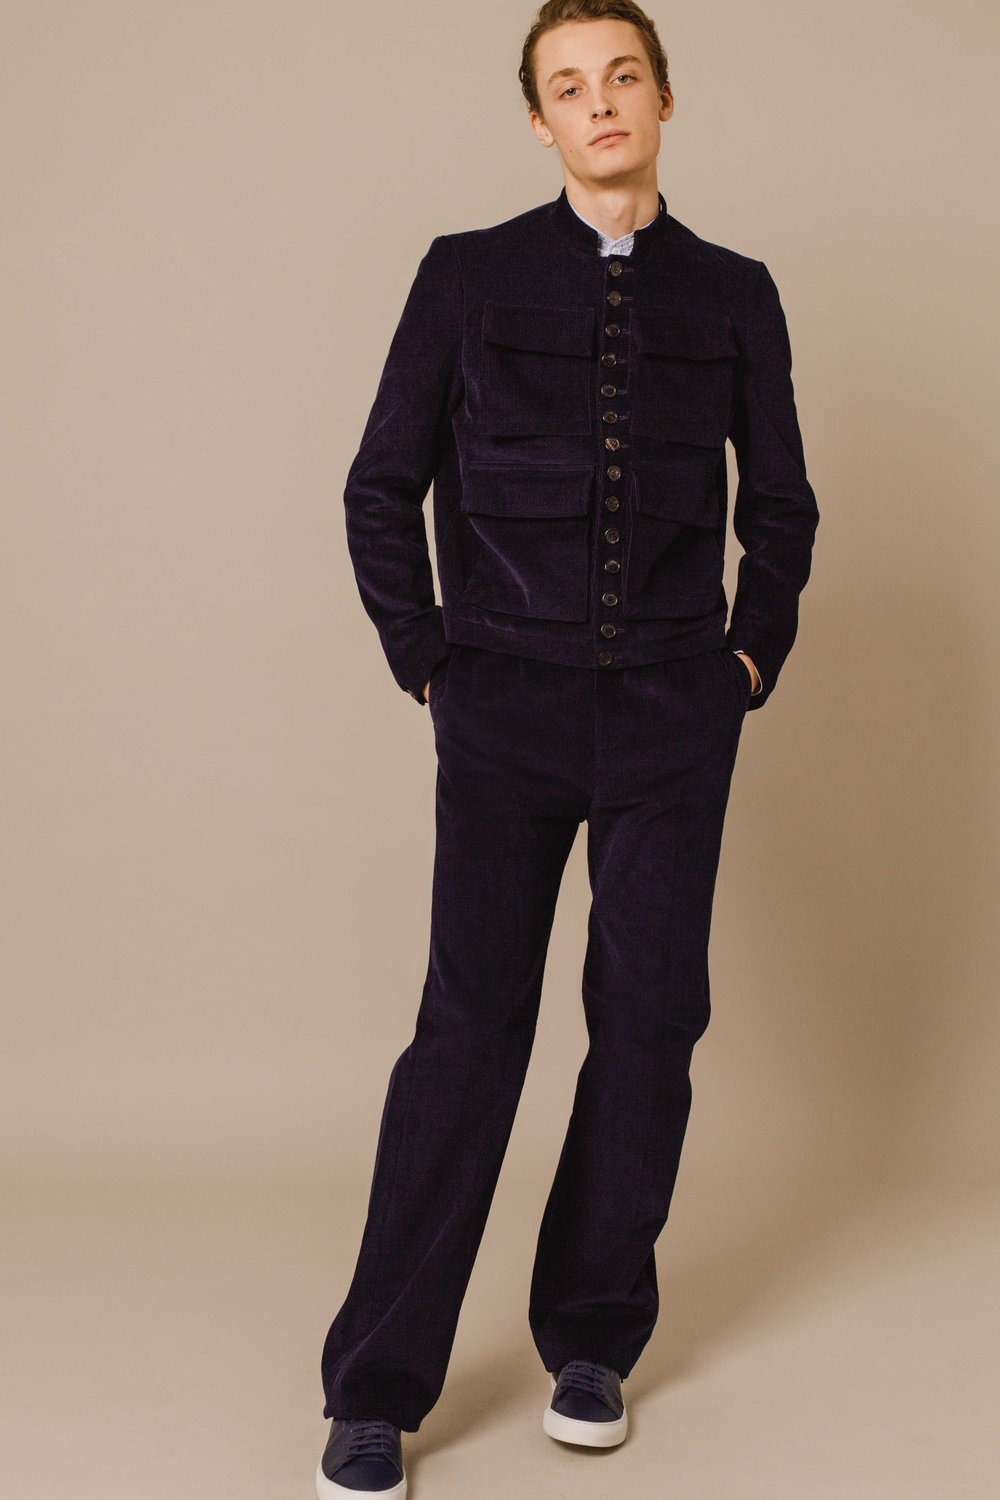 Aviator jacket navy Italian corduroy High waist trousers navy Italian corduroy Hand made in London